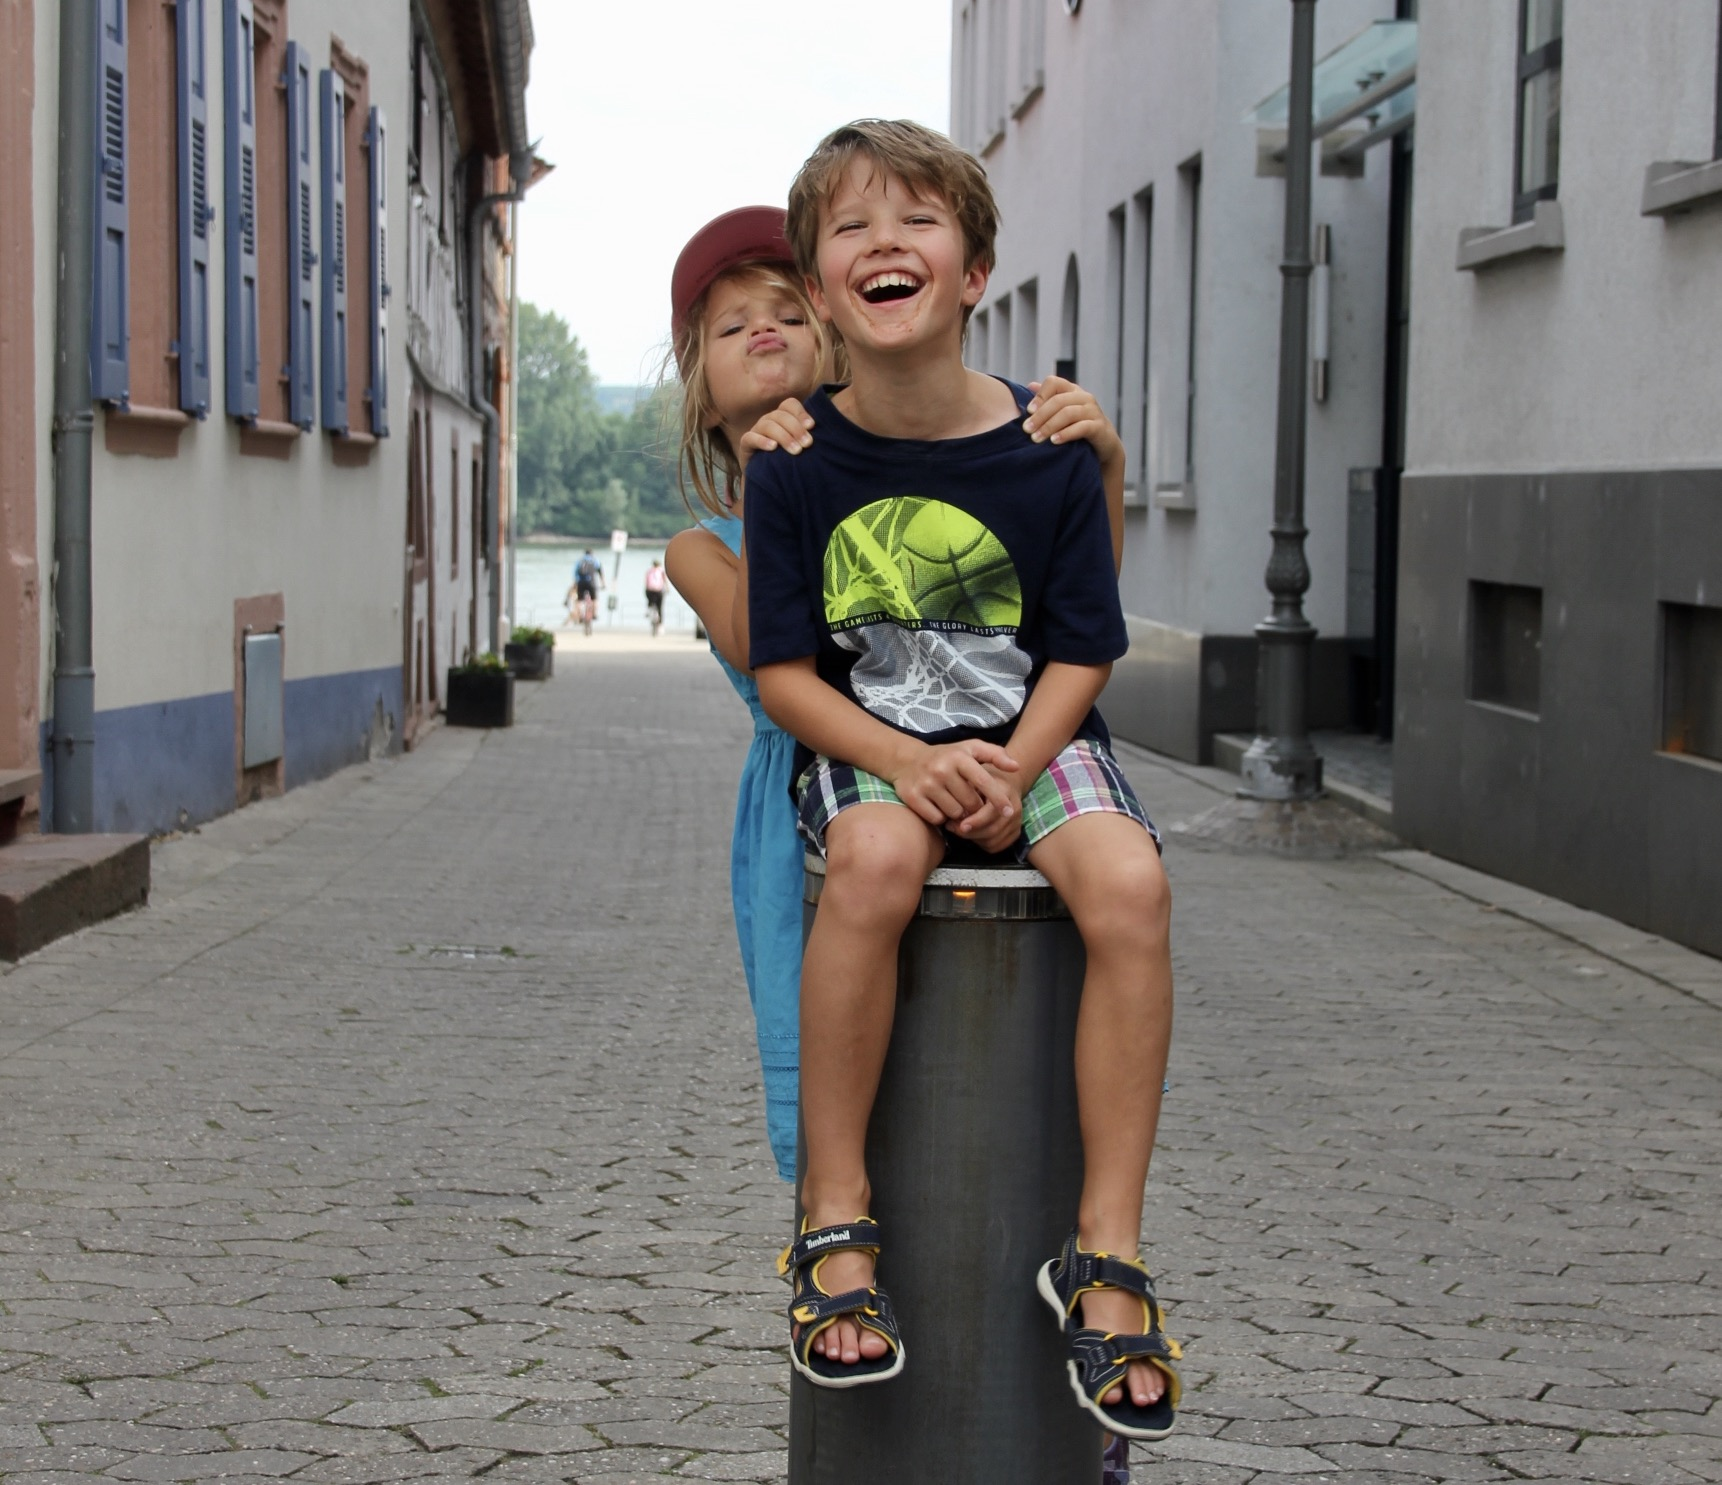 Summer camps in Germany